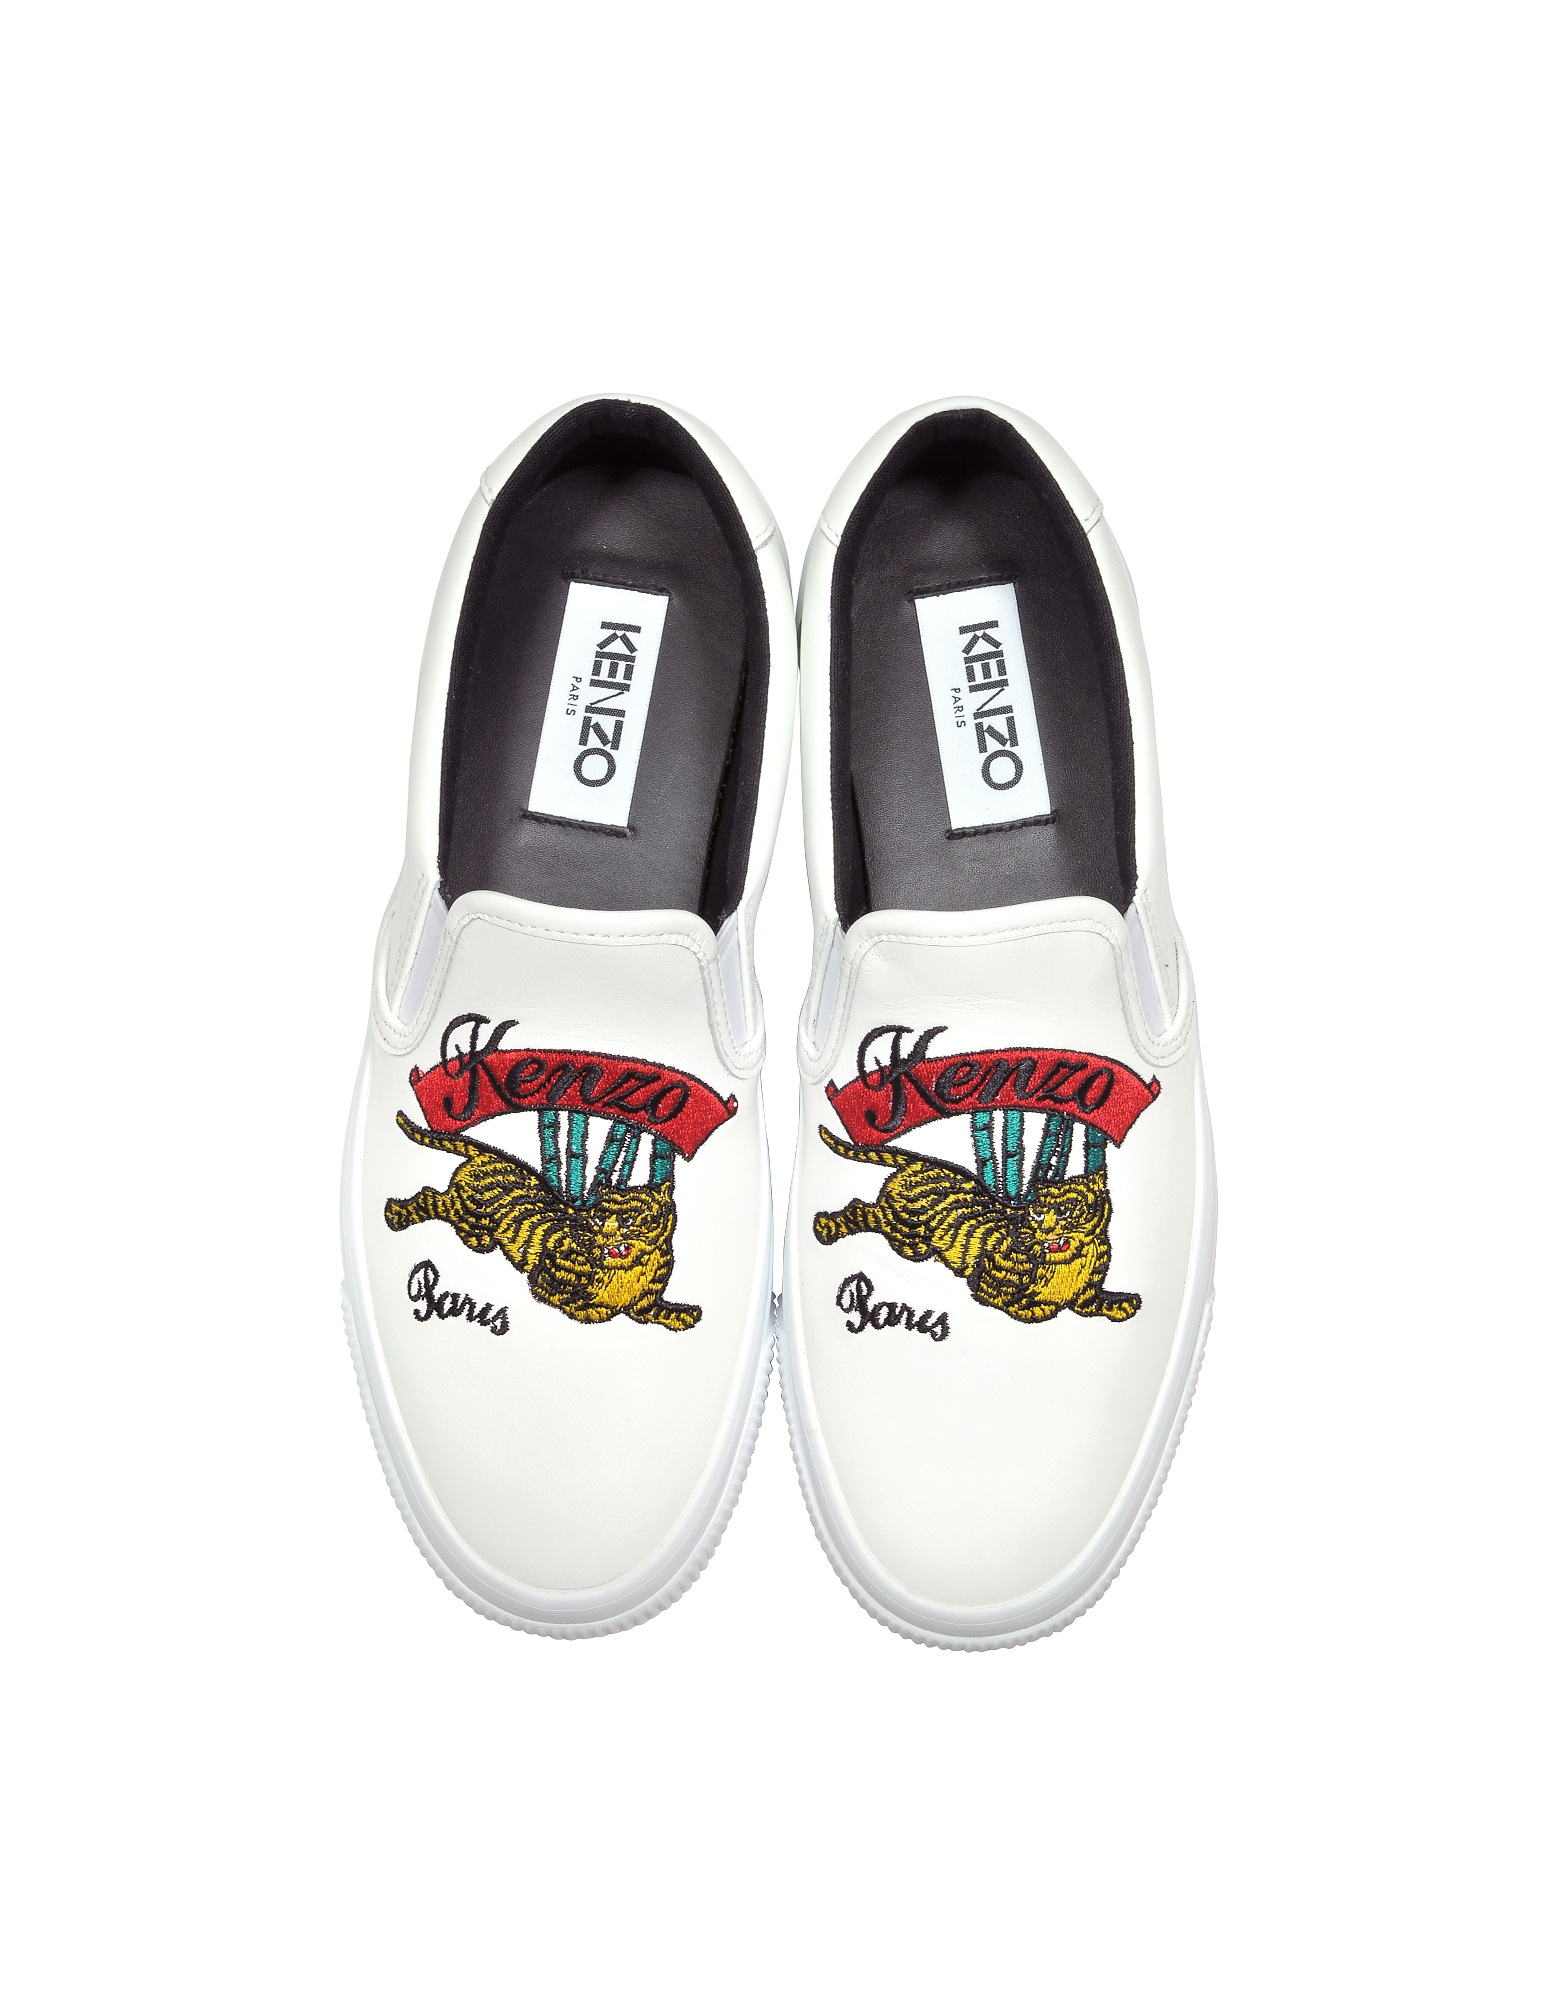 Kenzo Shoes, K-Skate Jumping Tiger Slip on Sneakers